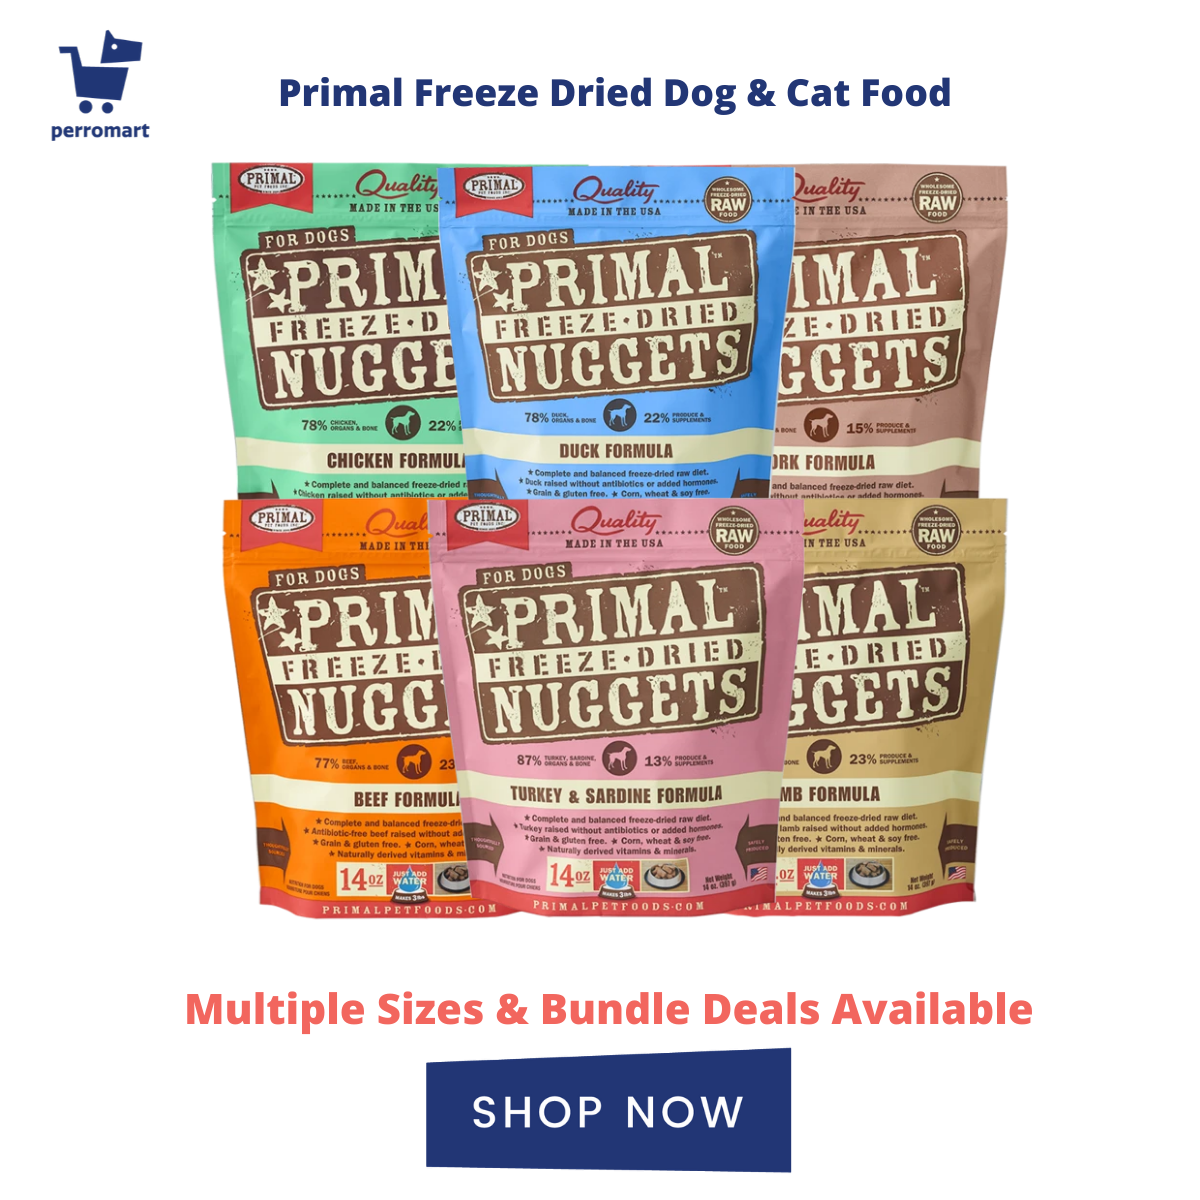 Primal Freeze Dried Food For Dogs and Cats